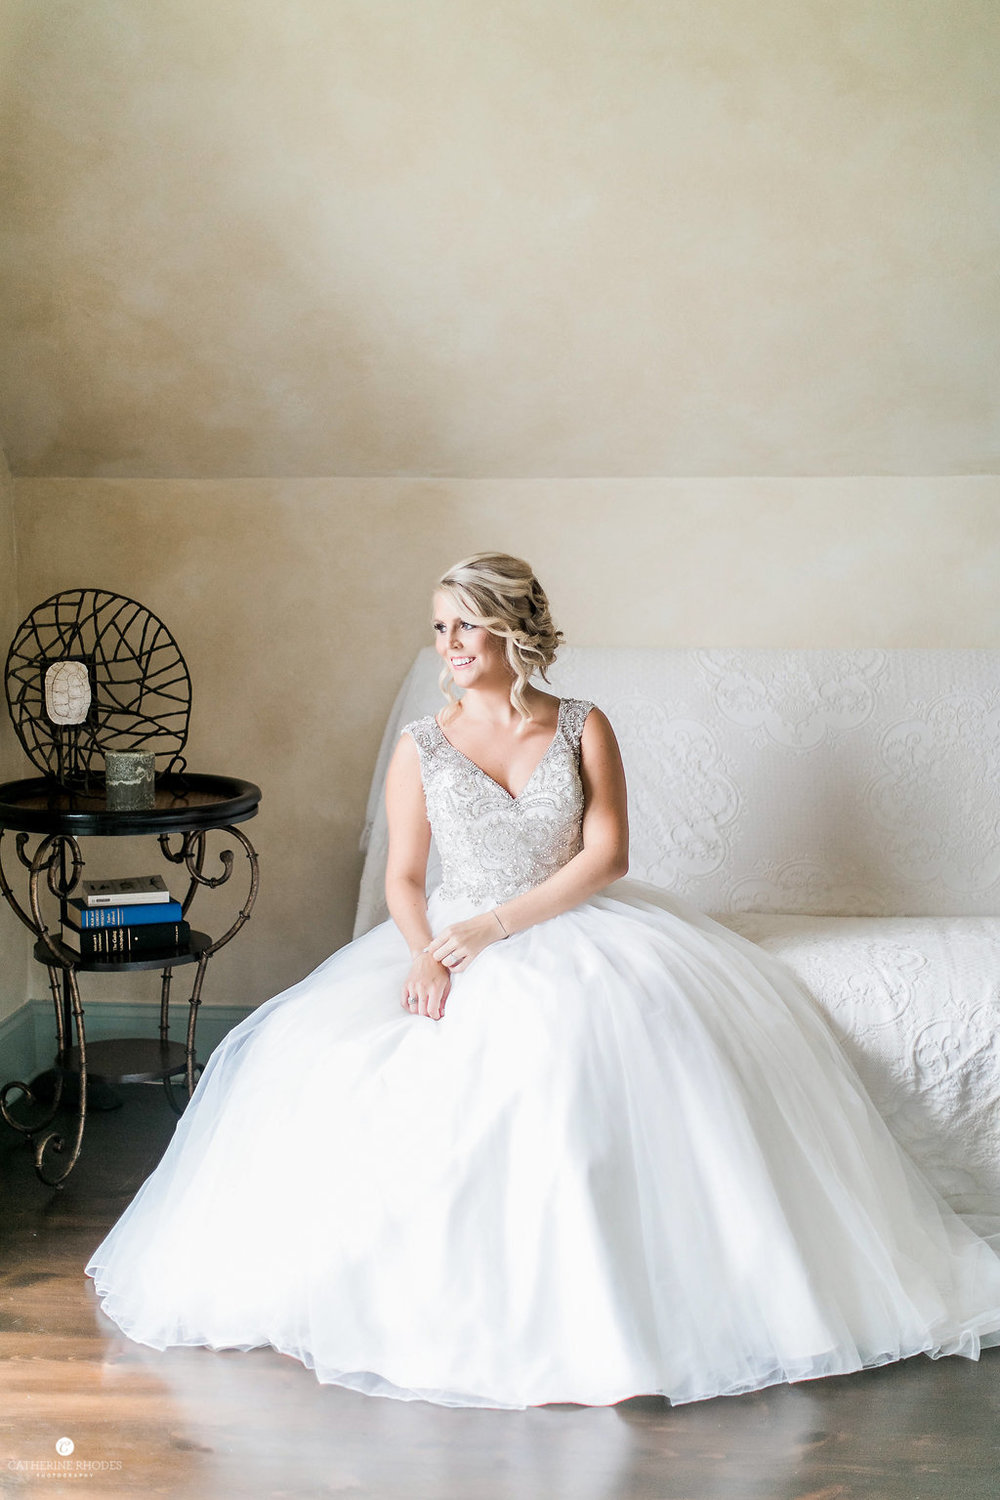 KimballBallroomWedding_GettingReady_KenzieDrew_Portraits_Catherinerhodesphotography(101of190)-Edit.jpg